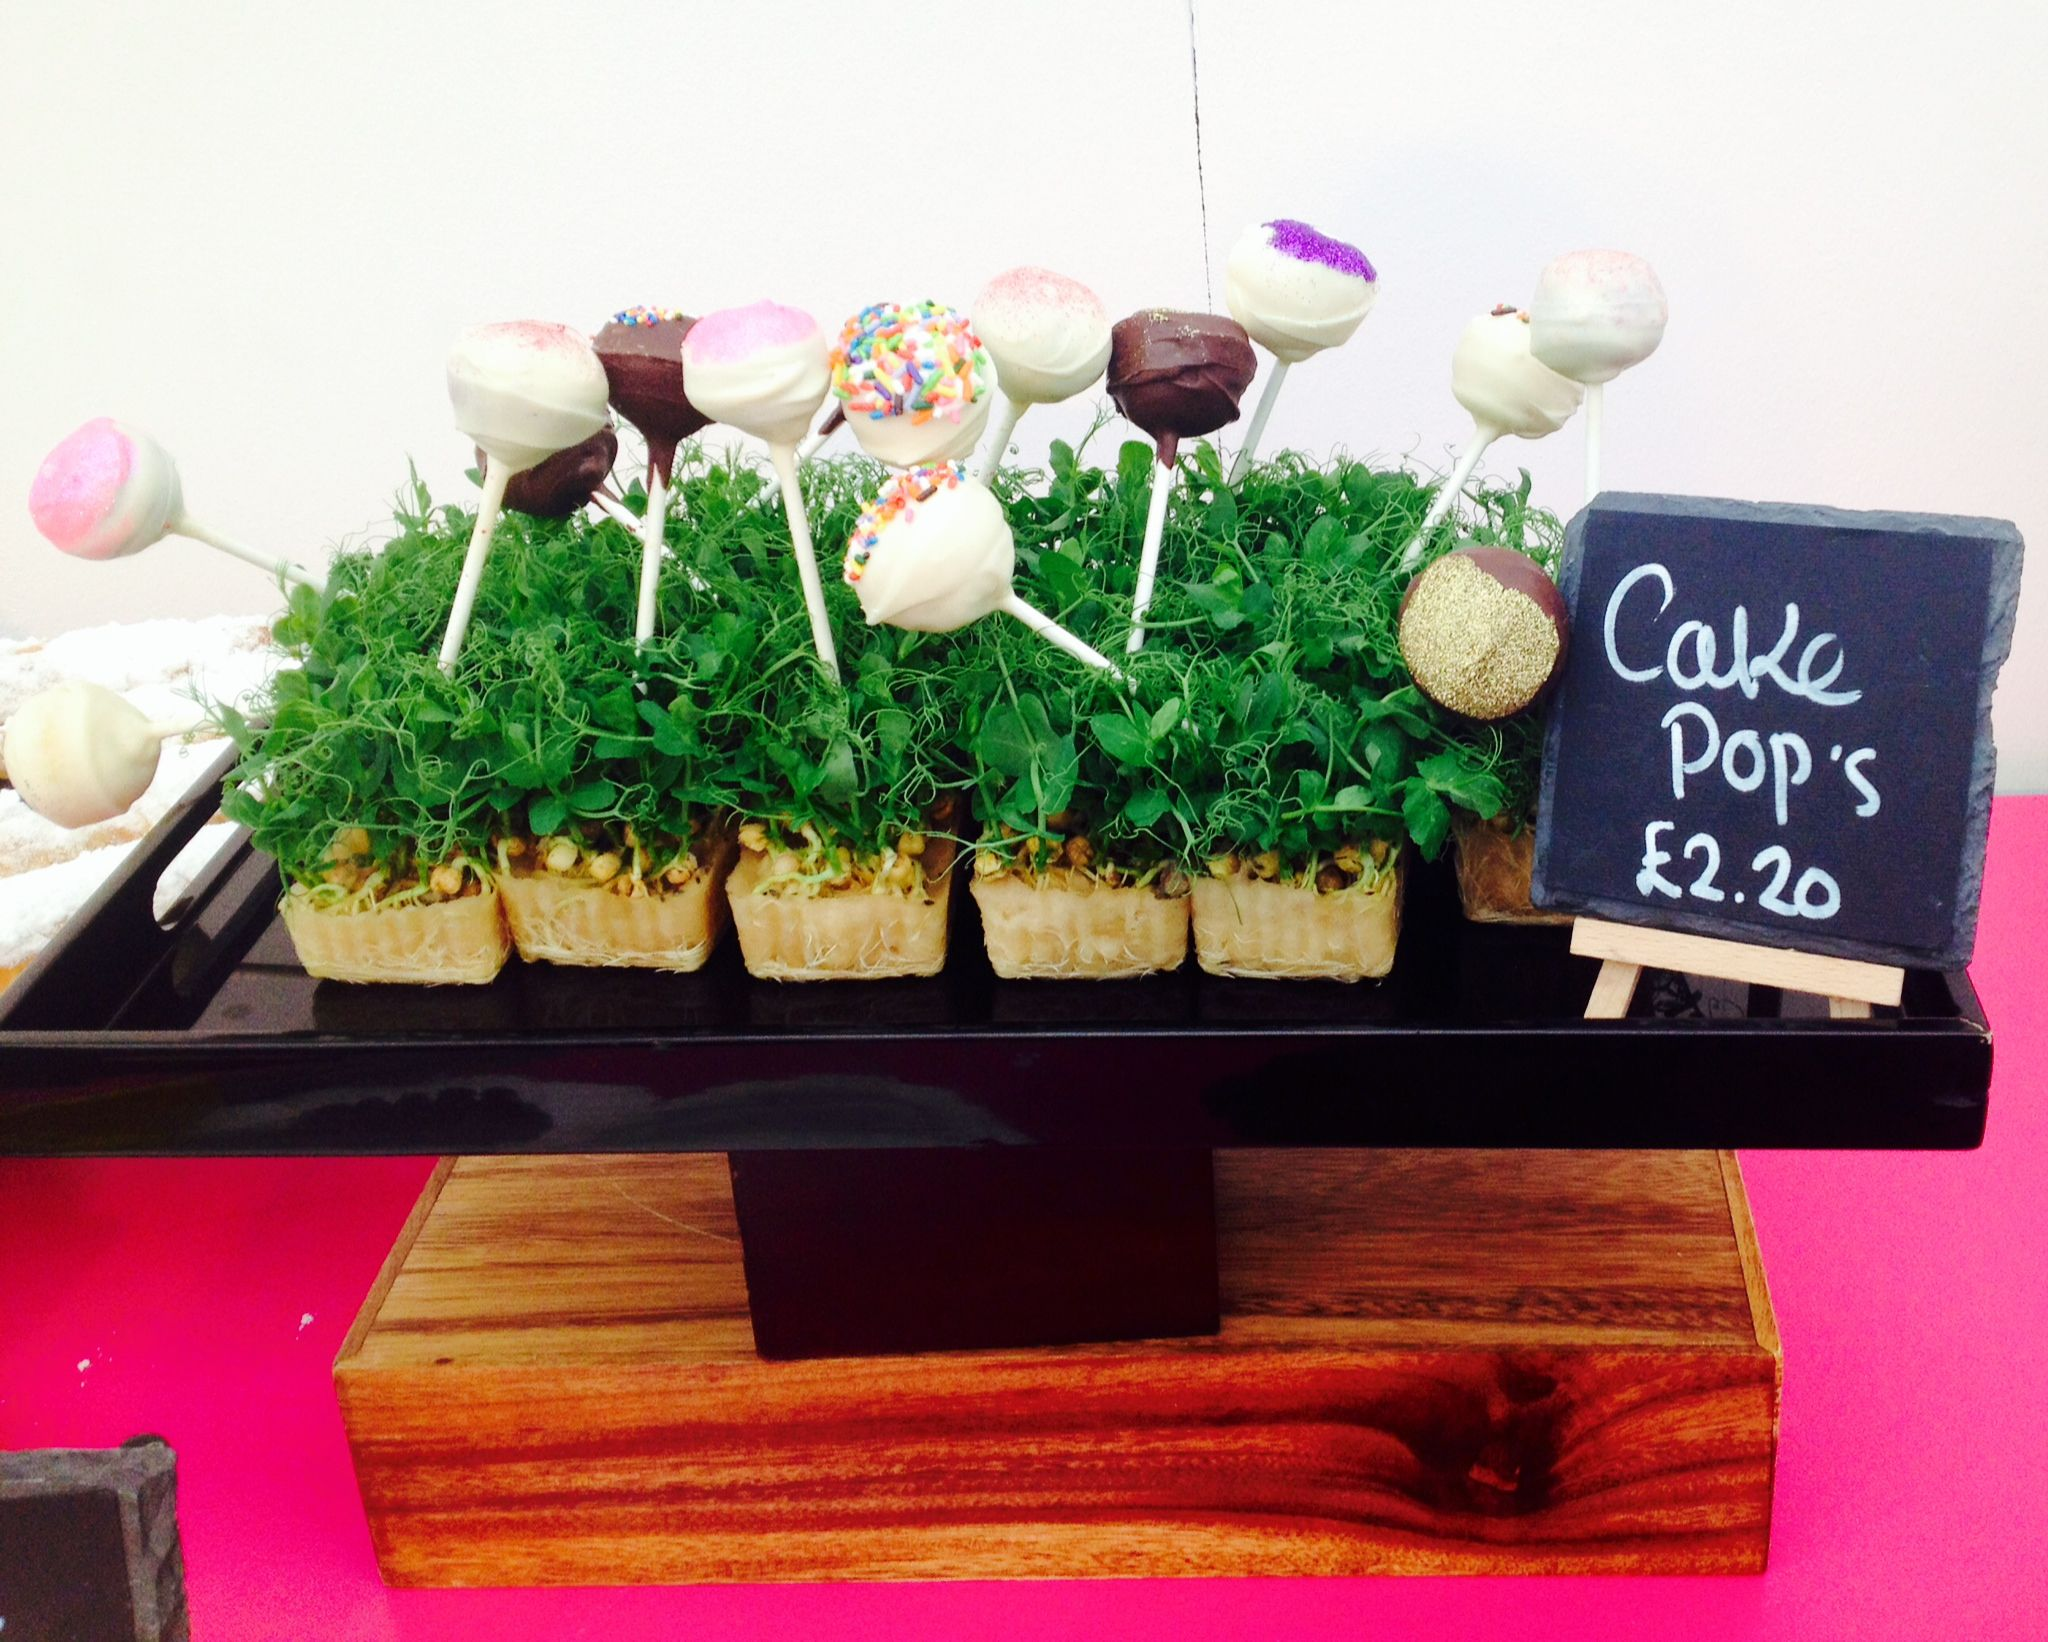 Cake Pops made by Chilli Bees Catering - they tasted and looked amazing.